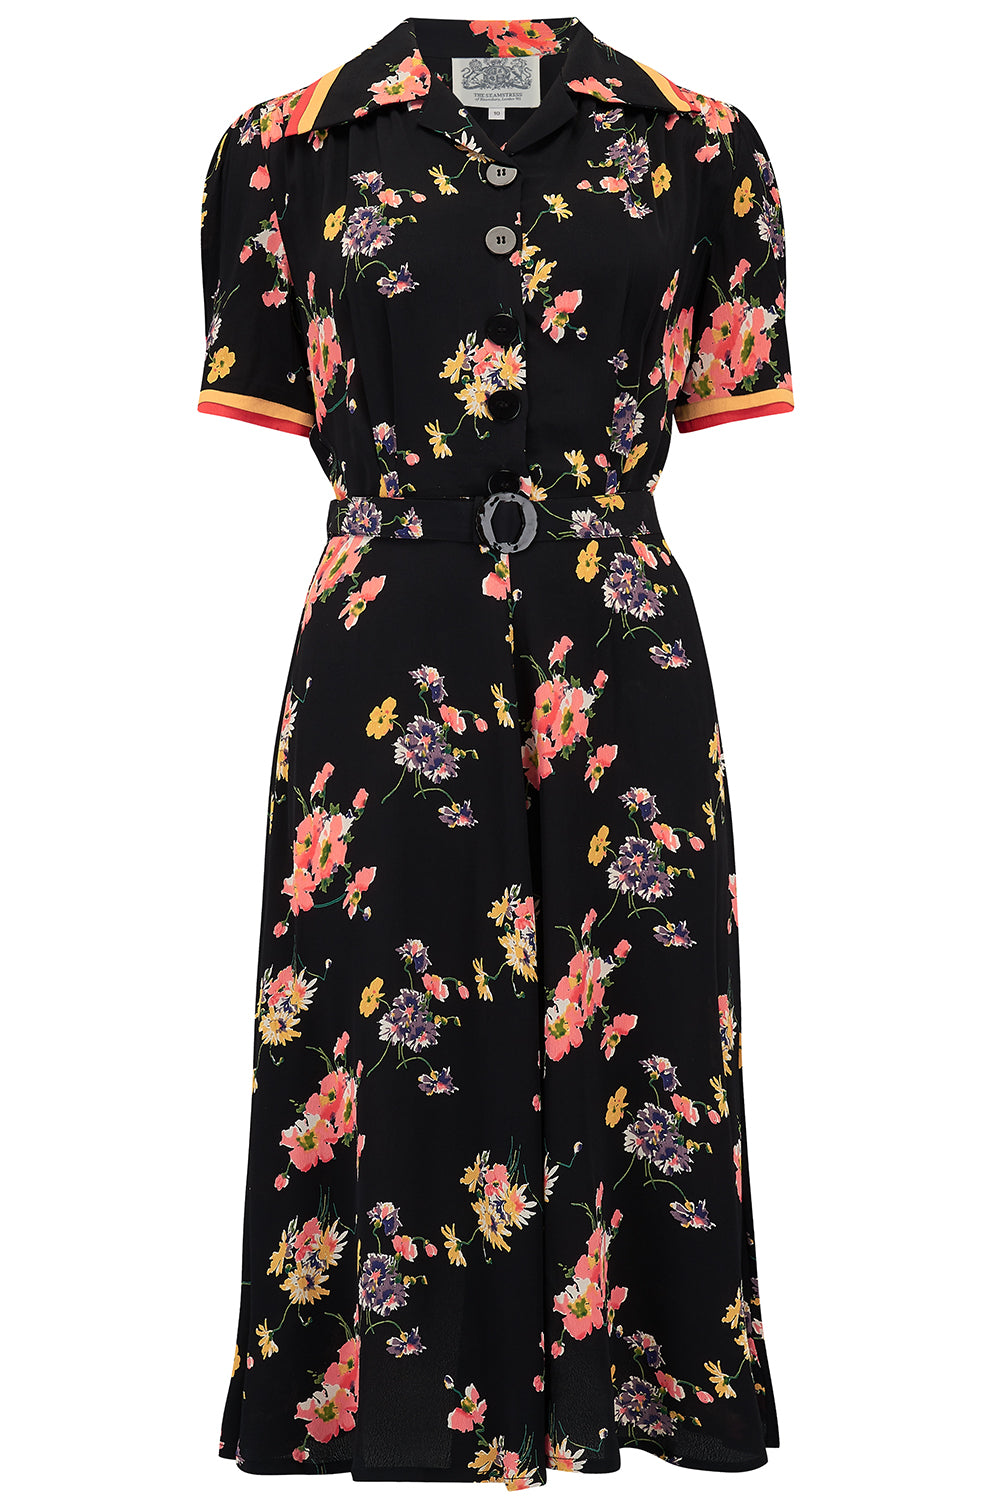 1940s Dress Styles Roma Dress in Mayflower Authentic  Classic 1940s Vintage Inspired Style £79.00 AT vintagedancer.com